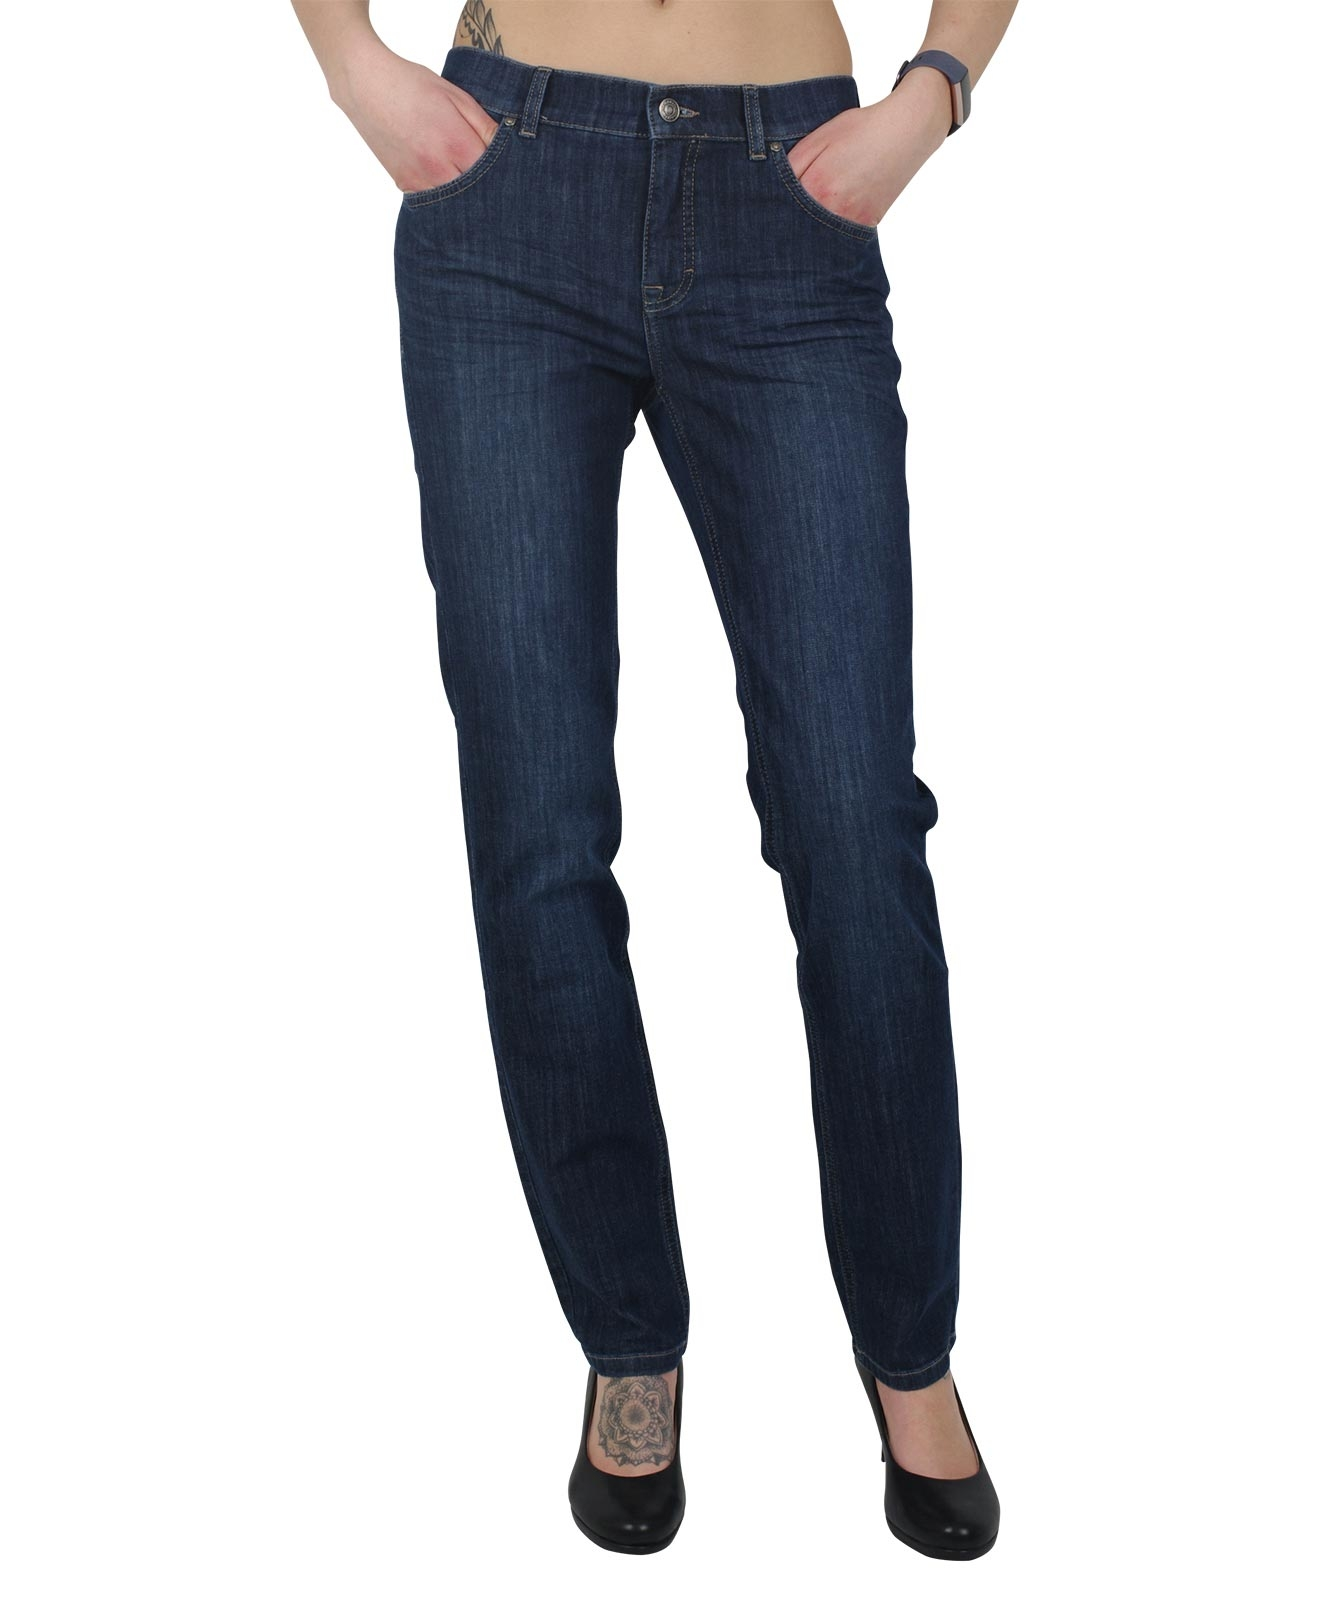 Hosen - Angels Straight Leg Jeans Cici in Mid Blue Used Buffi  - Onlineshop Jeans Meile